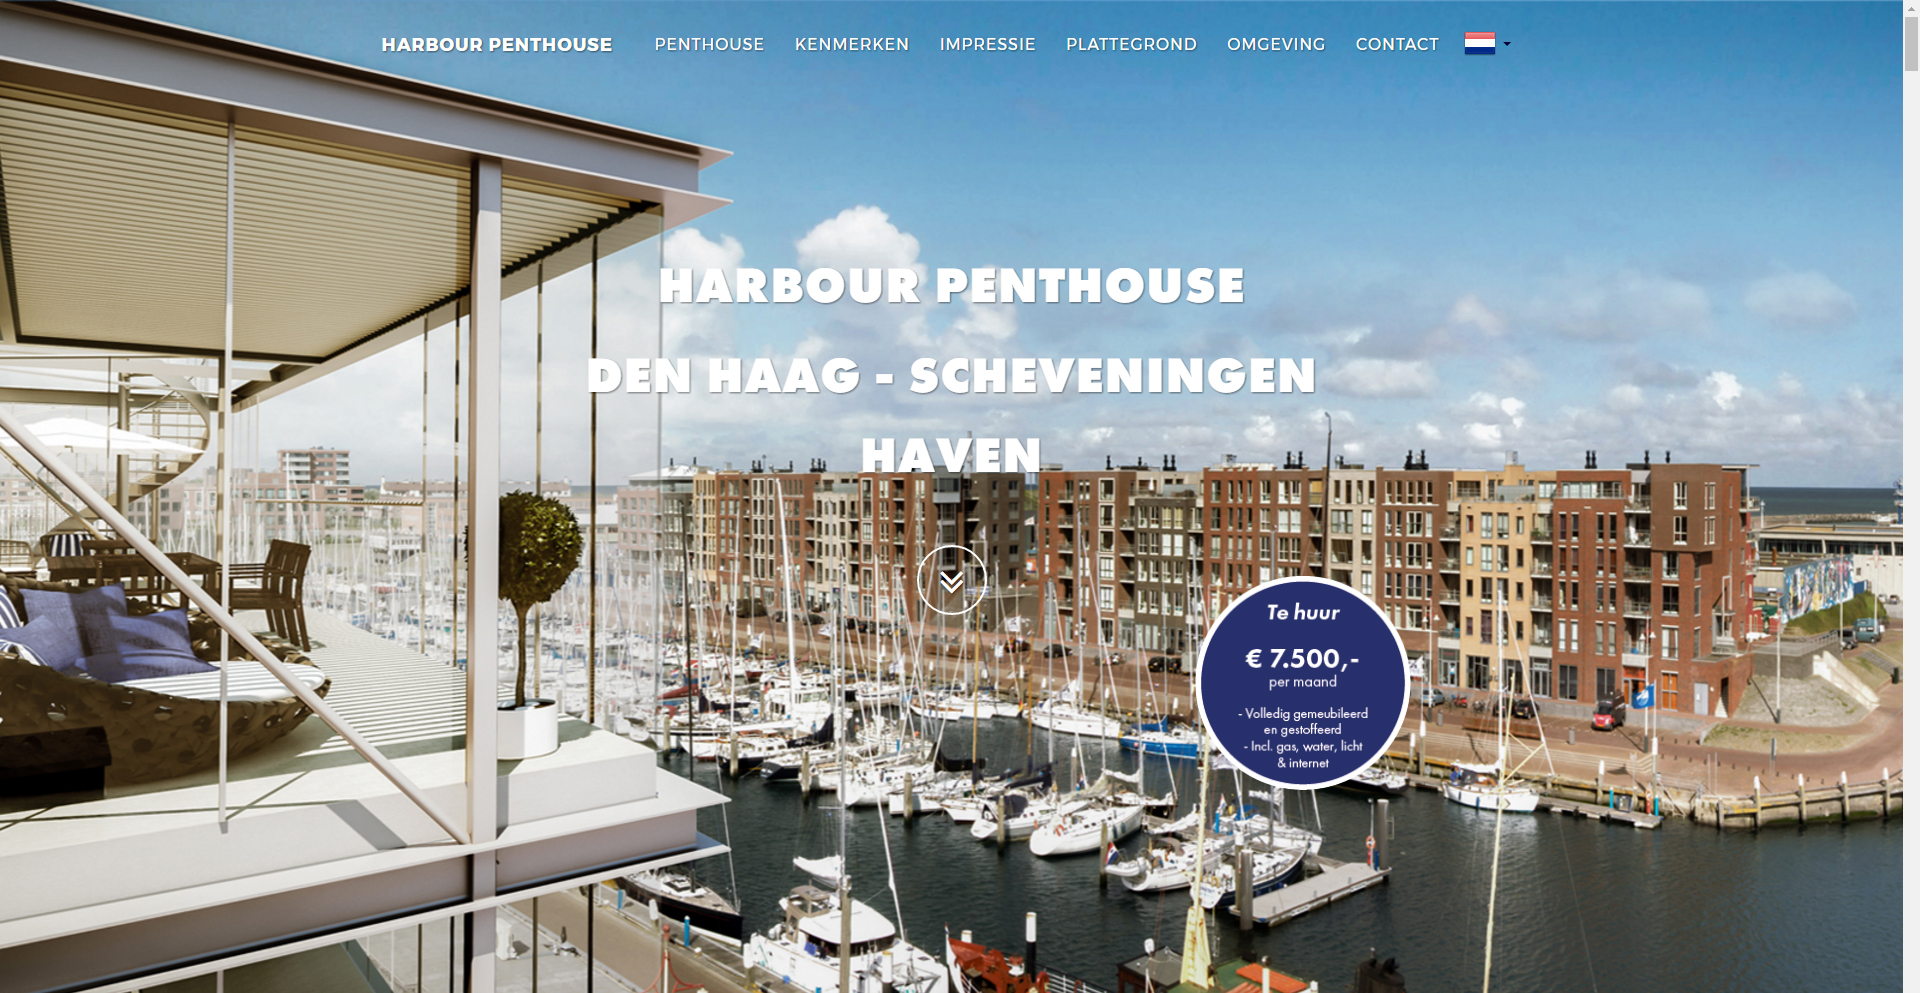 Website Harbour Penthouse - Site in a Second